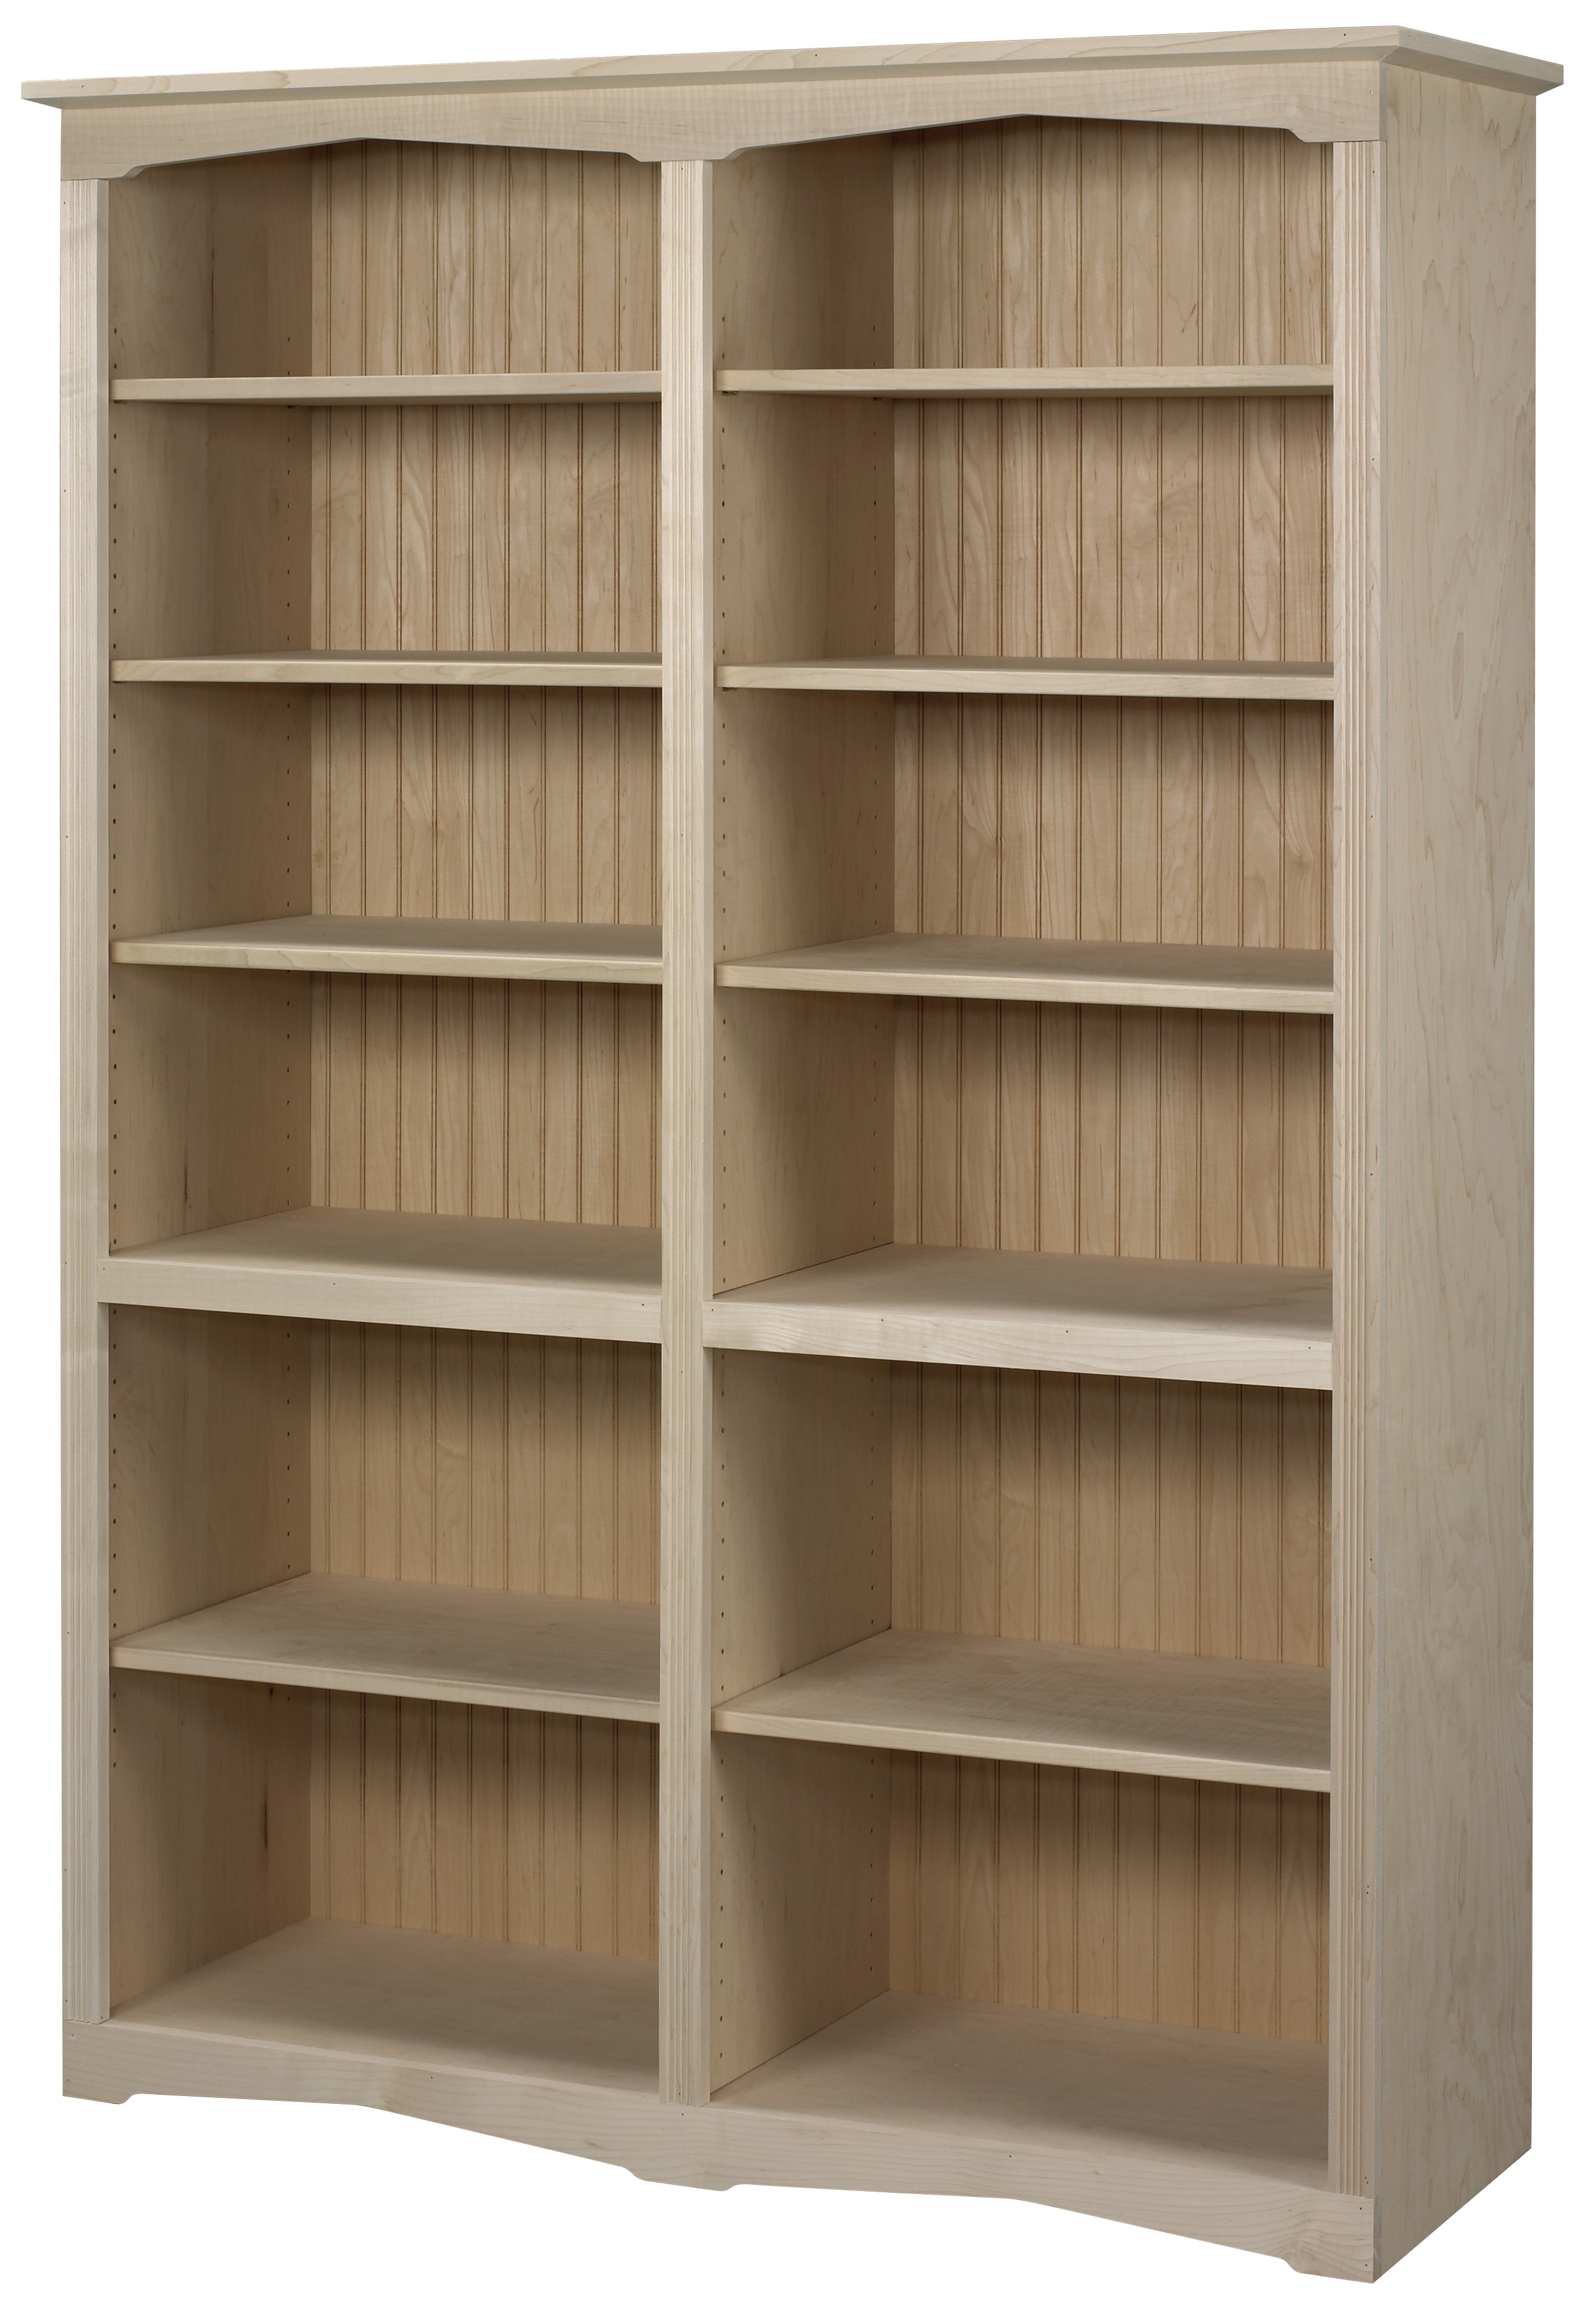 Widely Used Bookcases Ideas: Metro Tall Wide Extra Deep Bookcase Very Co Uk Intended For Wide Bookcases (View 5 of 15)